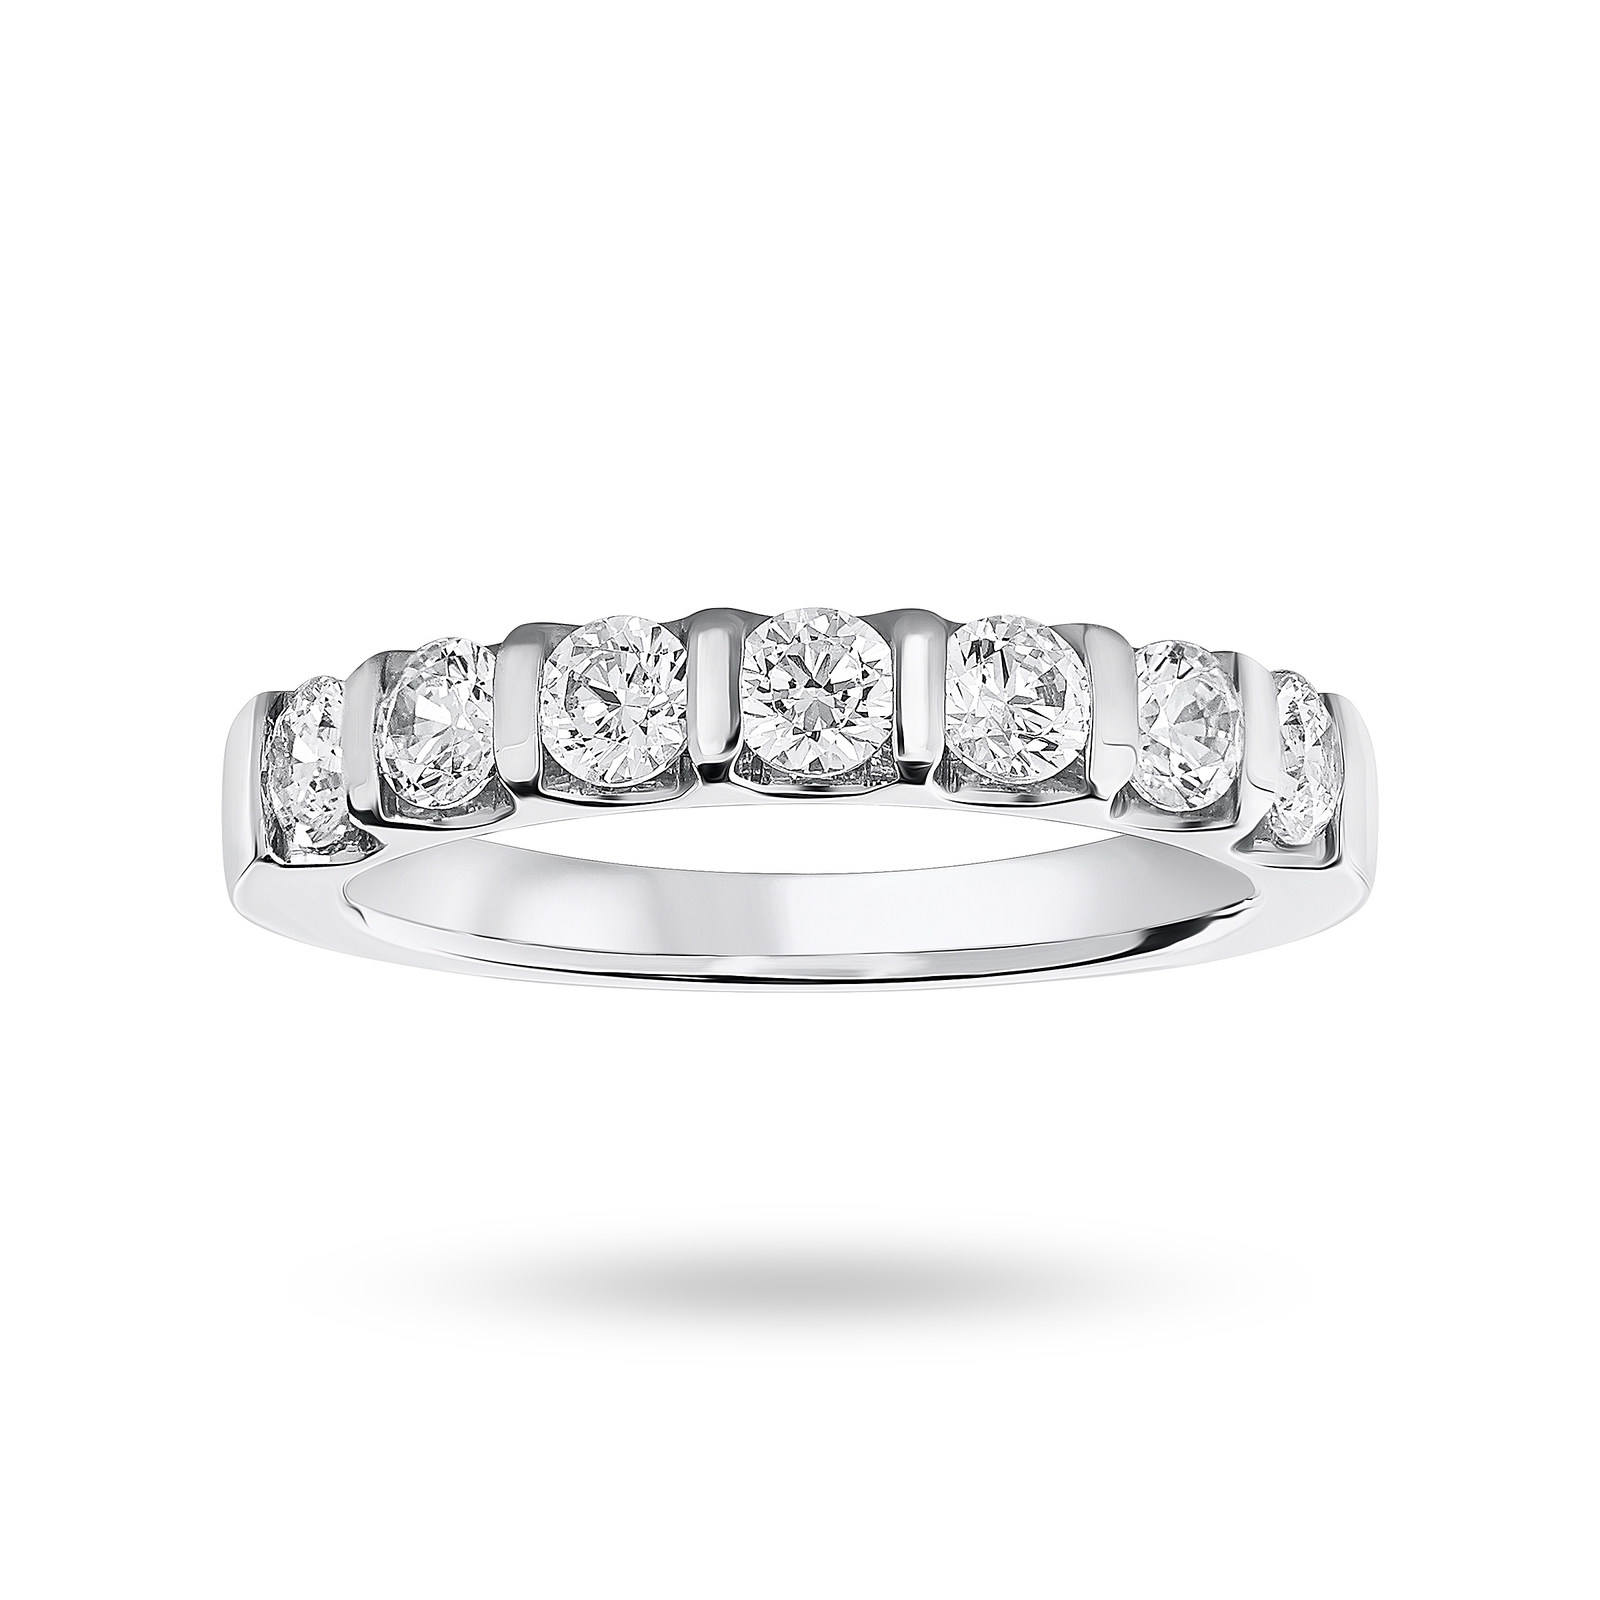 Platinum 0.77 Carat Brilliant Cut Bar Half Eternity Ring